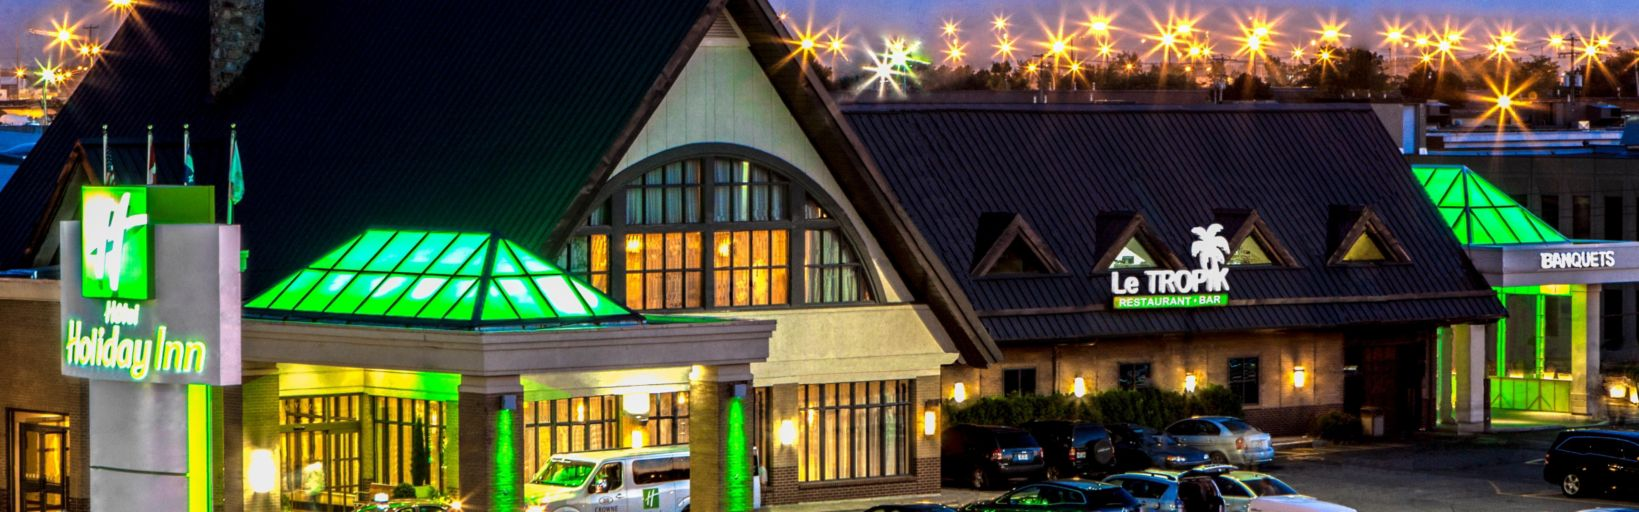 Holiday inn montreal aeroport airport hotel by ihg day or night the holiday inn montreal airport is waiting for you solutioingenieria Choice Image